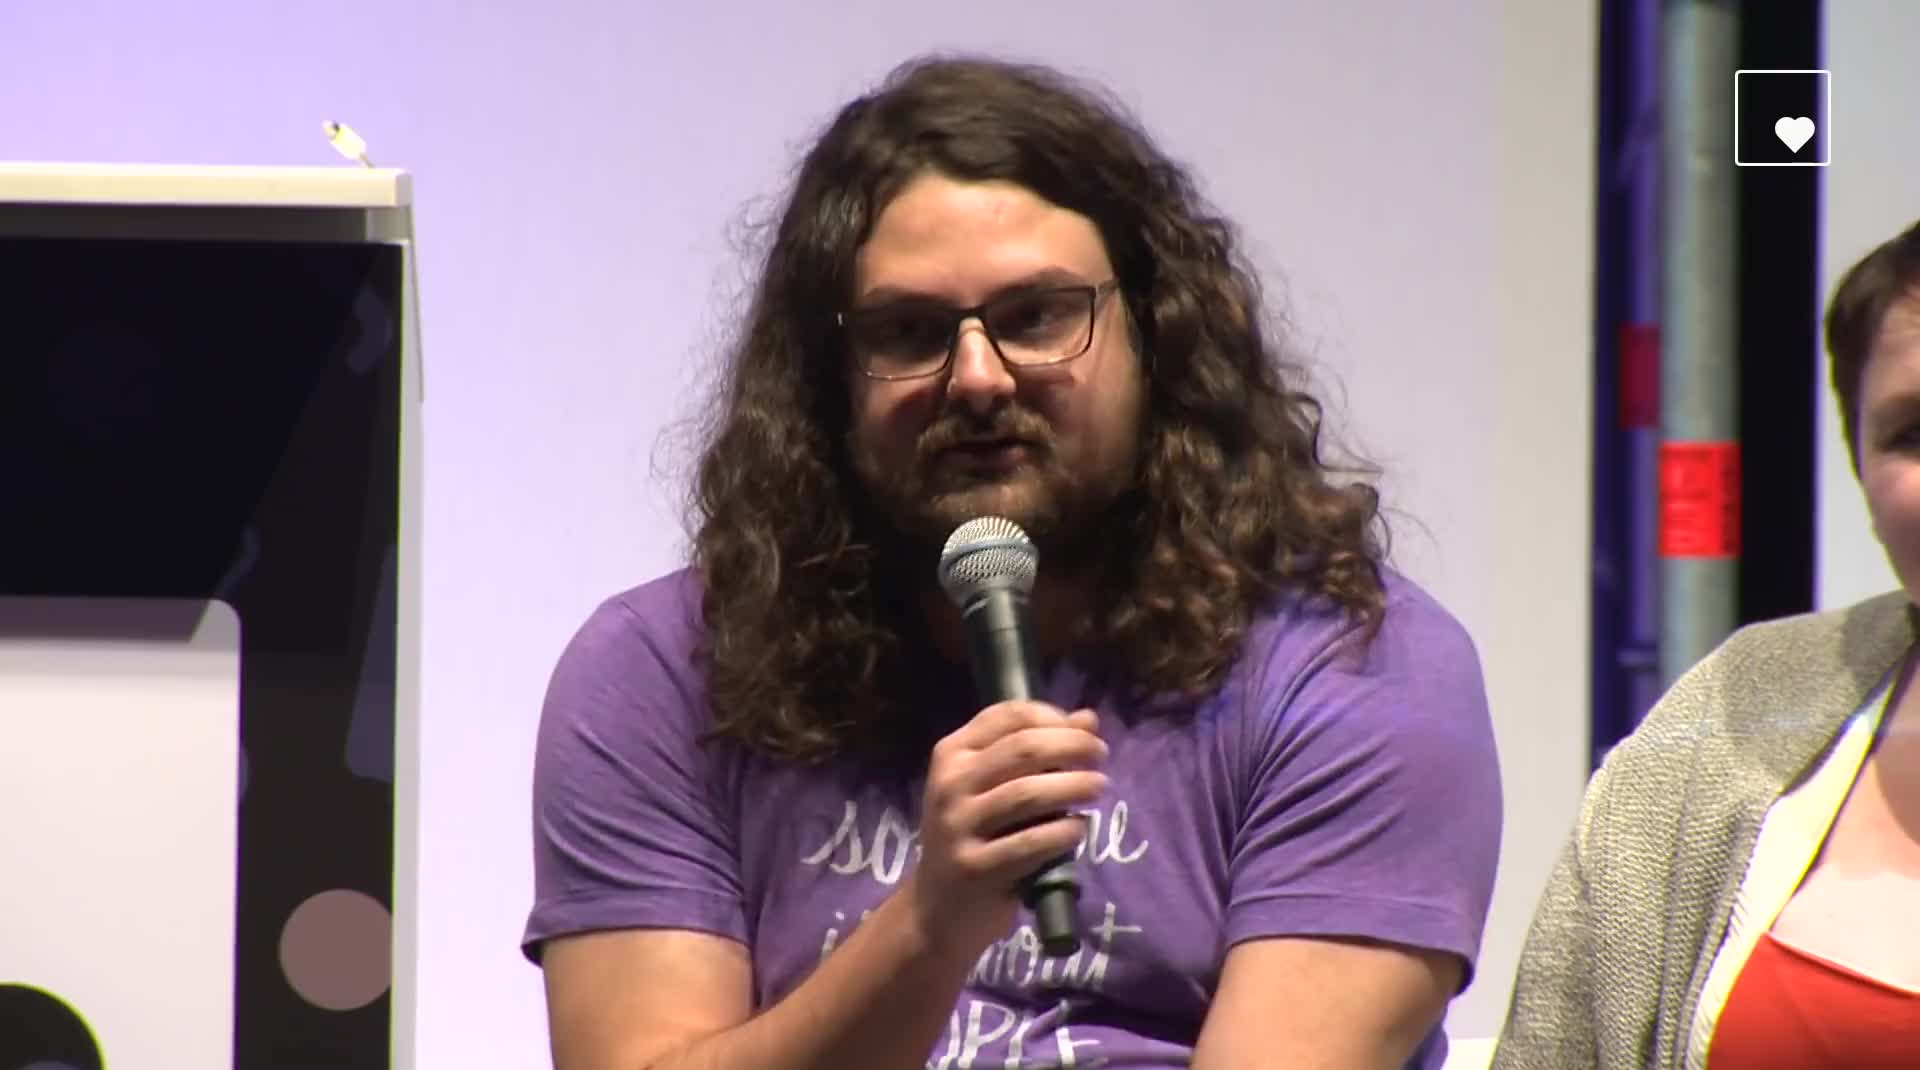 TC39 (JavaScript standard committee) panel | JSConf EU 2017